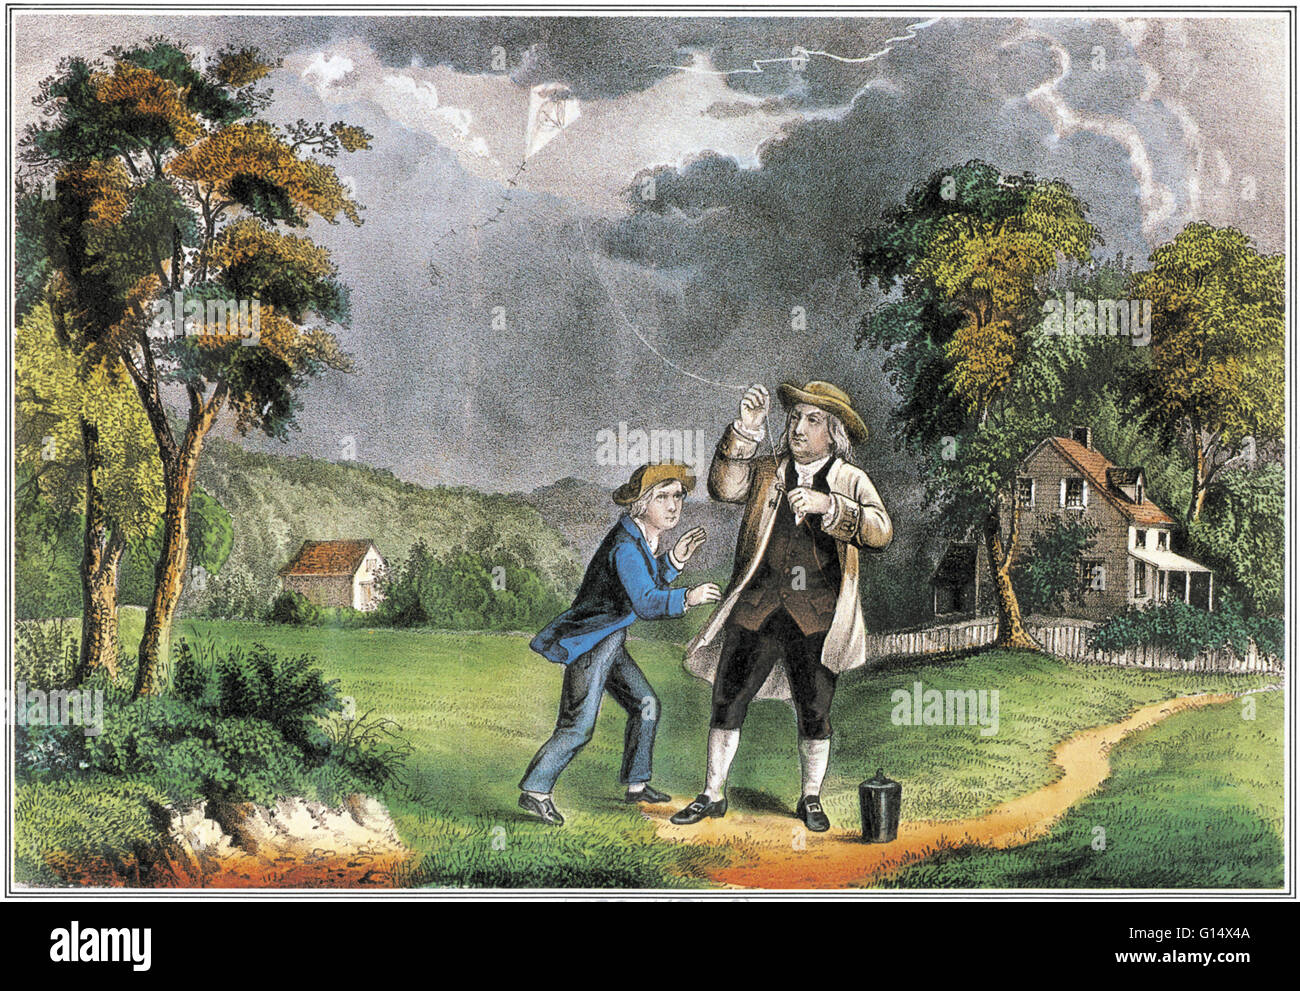 Franklin experiments with kite and key, June 1752. Benjamin Franklin  (1706-1790) was one of the Founding Fathers of the United States.